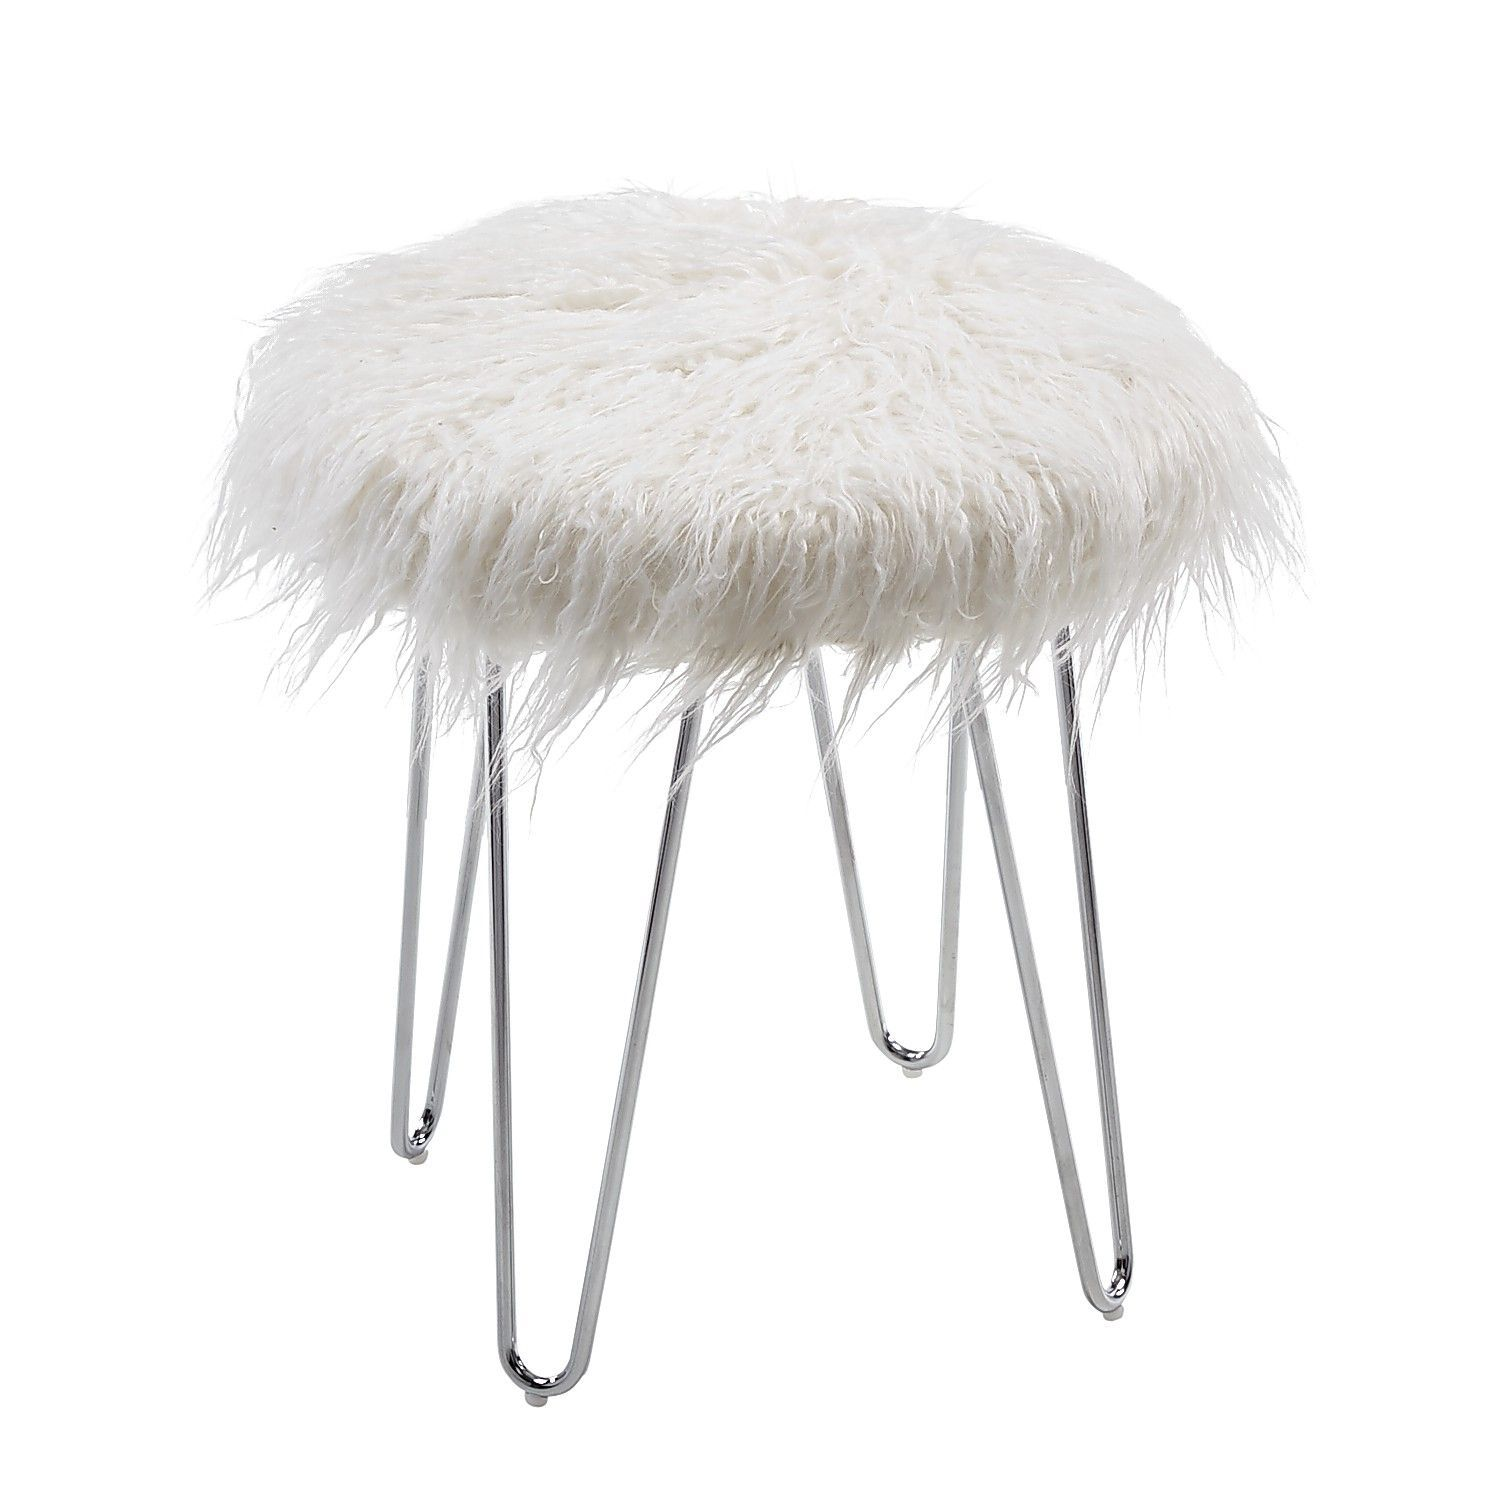 Swell Hairpin Fur Vanity Stool Diy Makeup Vanity In 2019 Caraccident5 Cool Chair Designs And Ideas Caraccident5Info